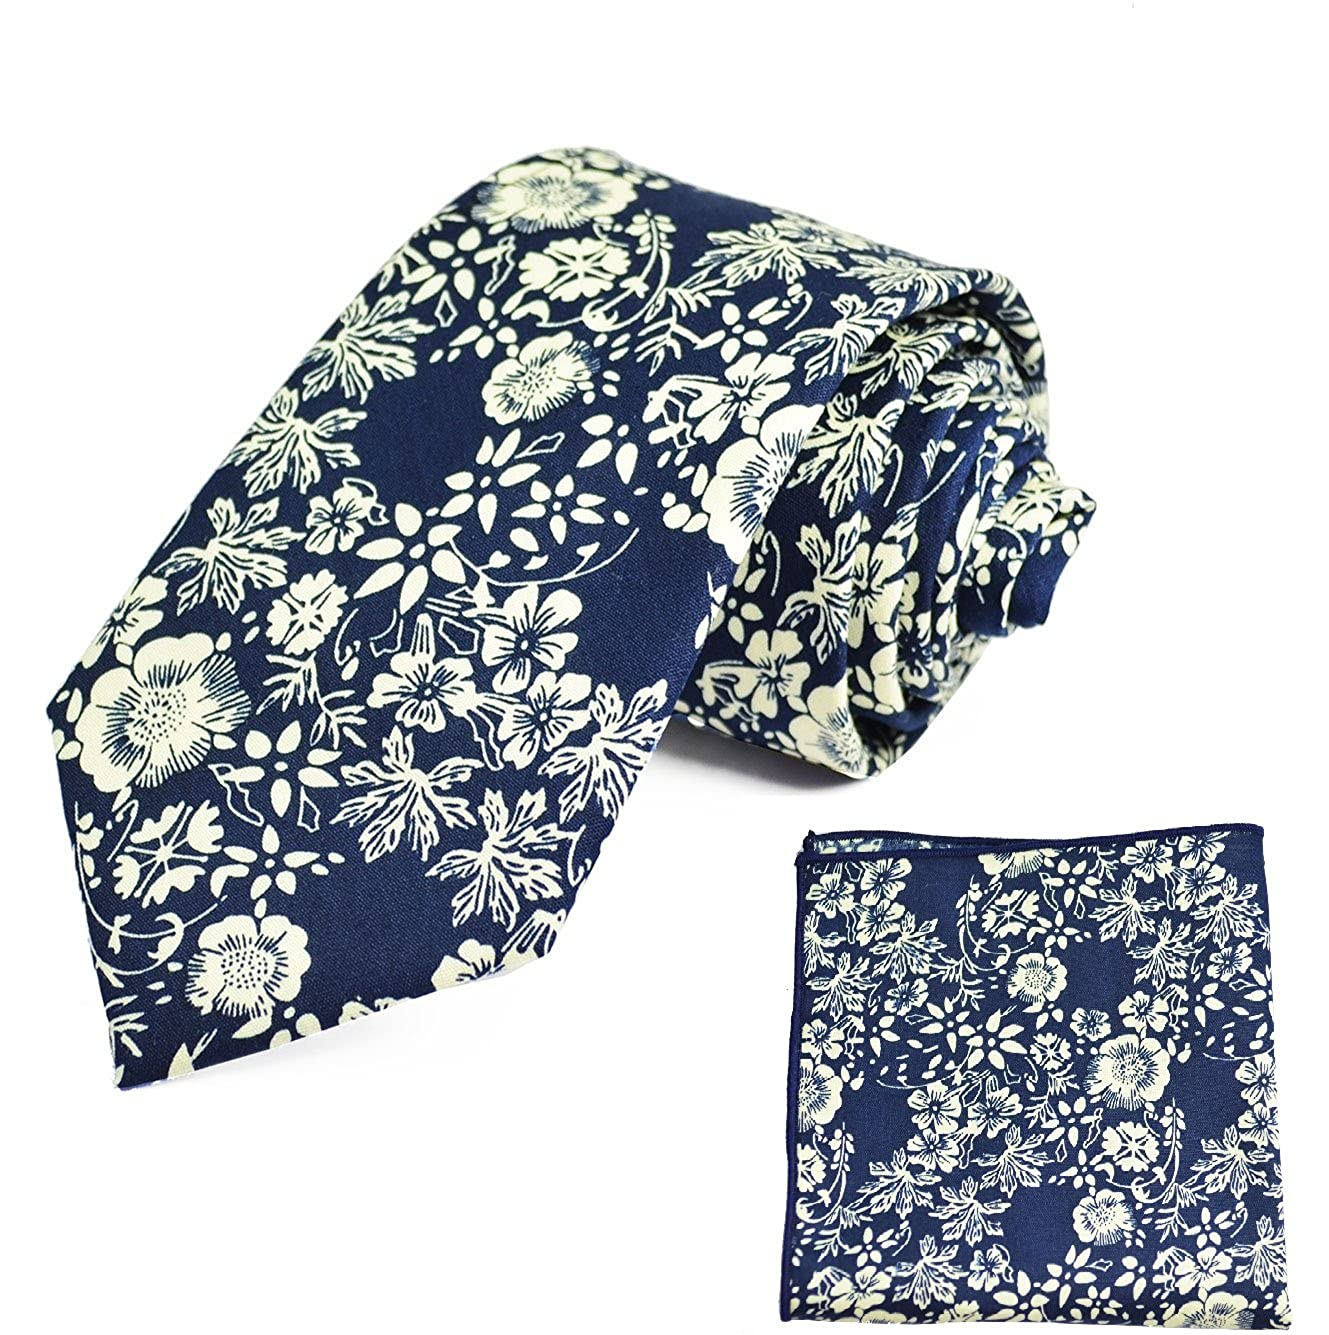 Blue Floral 100/% Cotton Tie and Pocket Square Set by Paul Malone